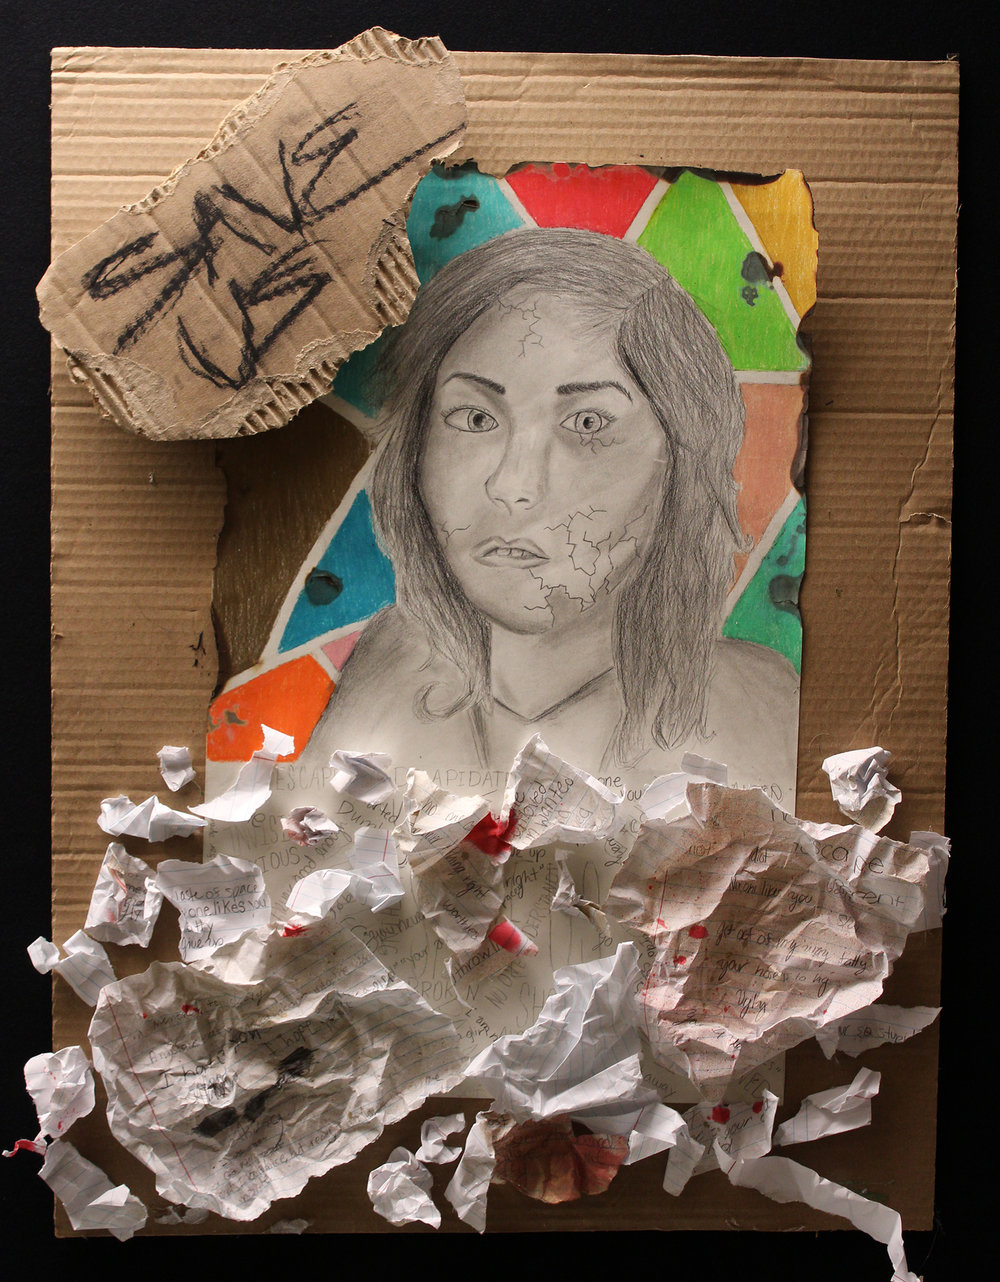 """Broken,"" by 8th Grade student. Photo by Melody Weintraub."